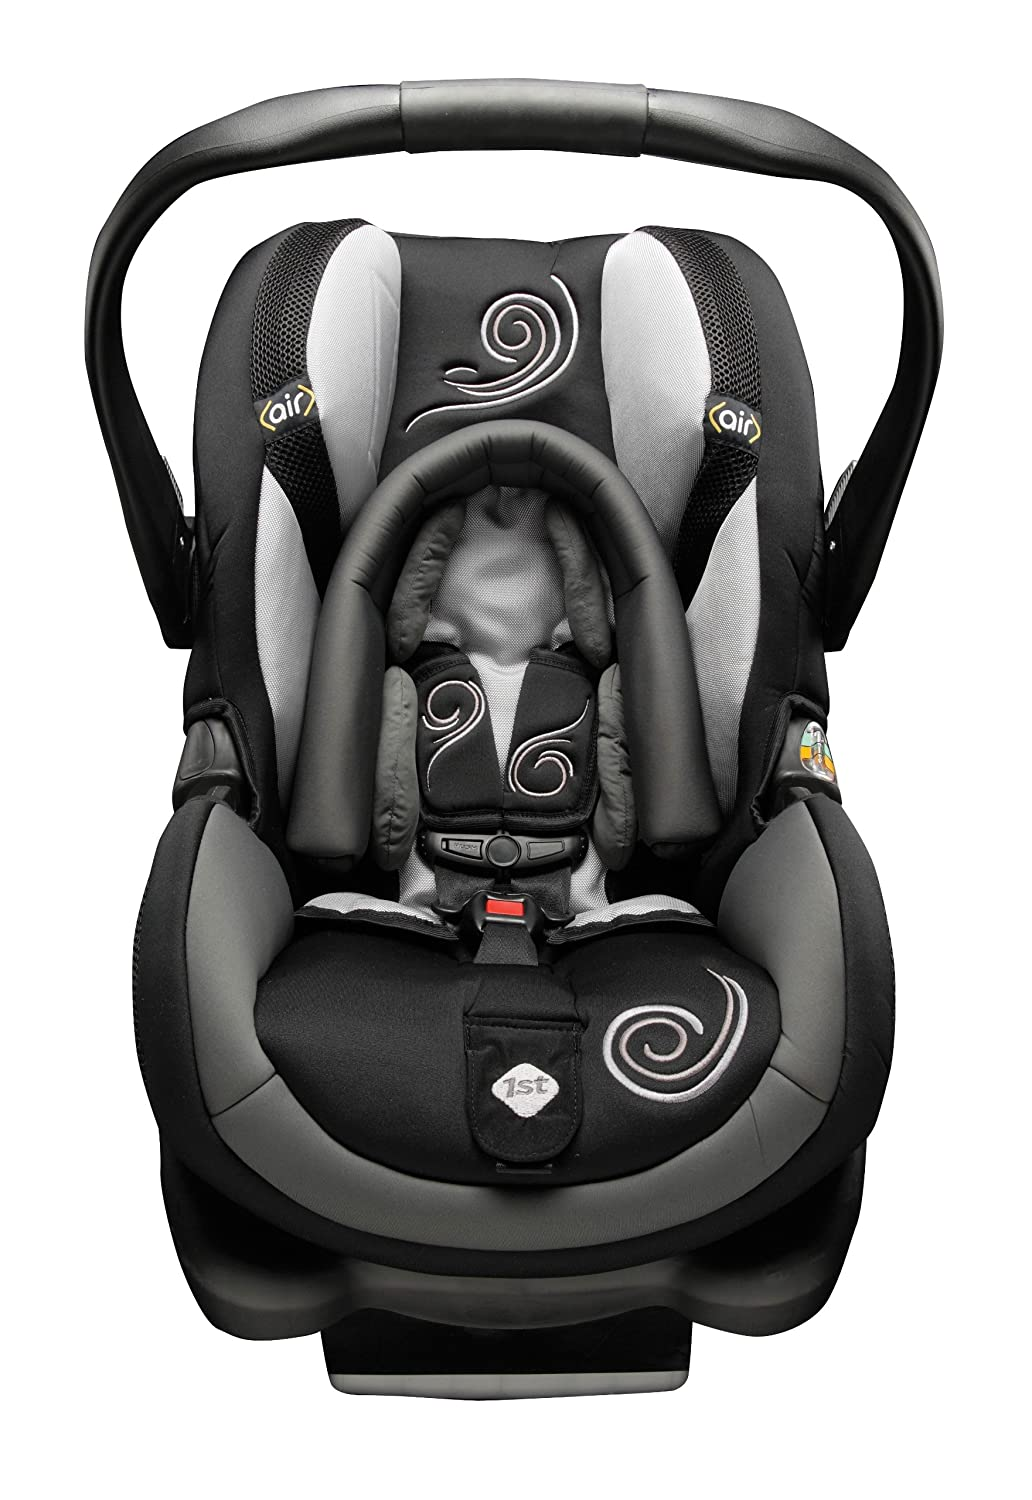 Amazon.com : Safety 1st Air Protect On Board 35 SE Infant Car Seat